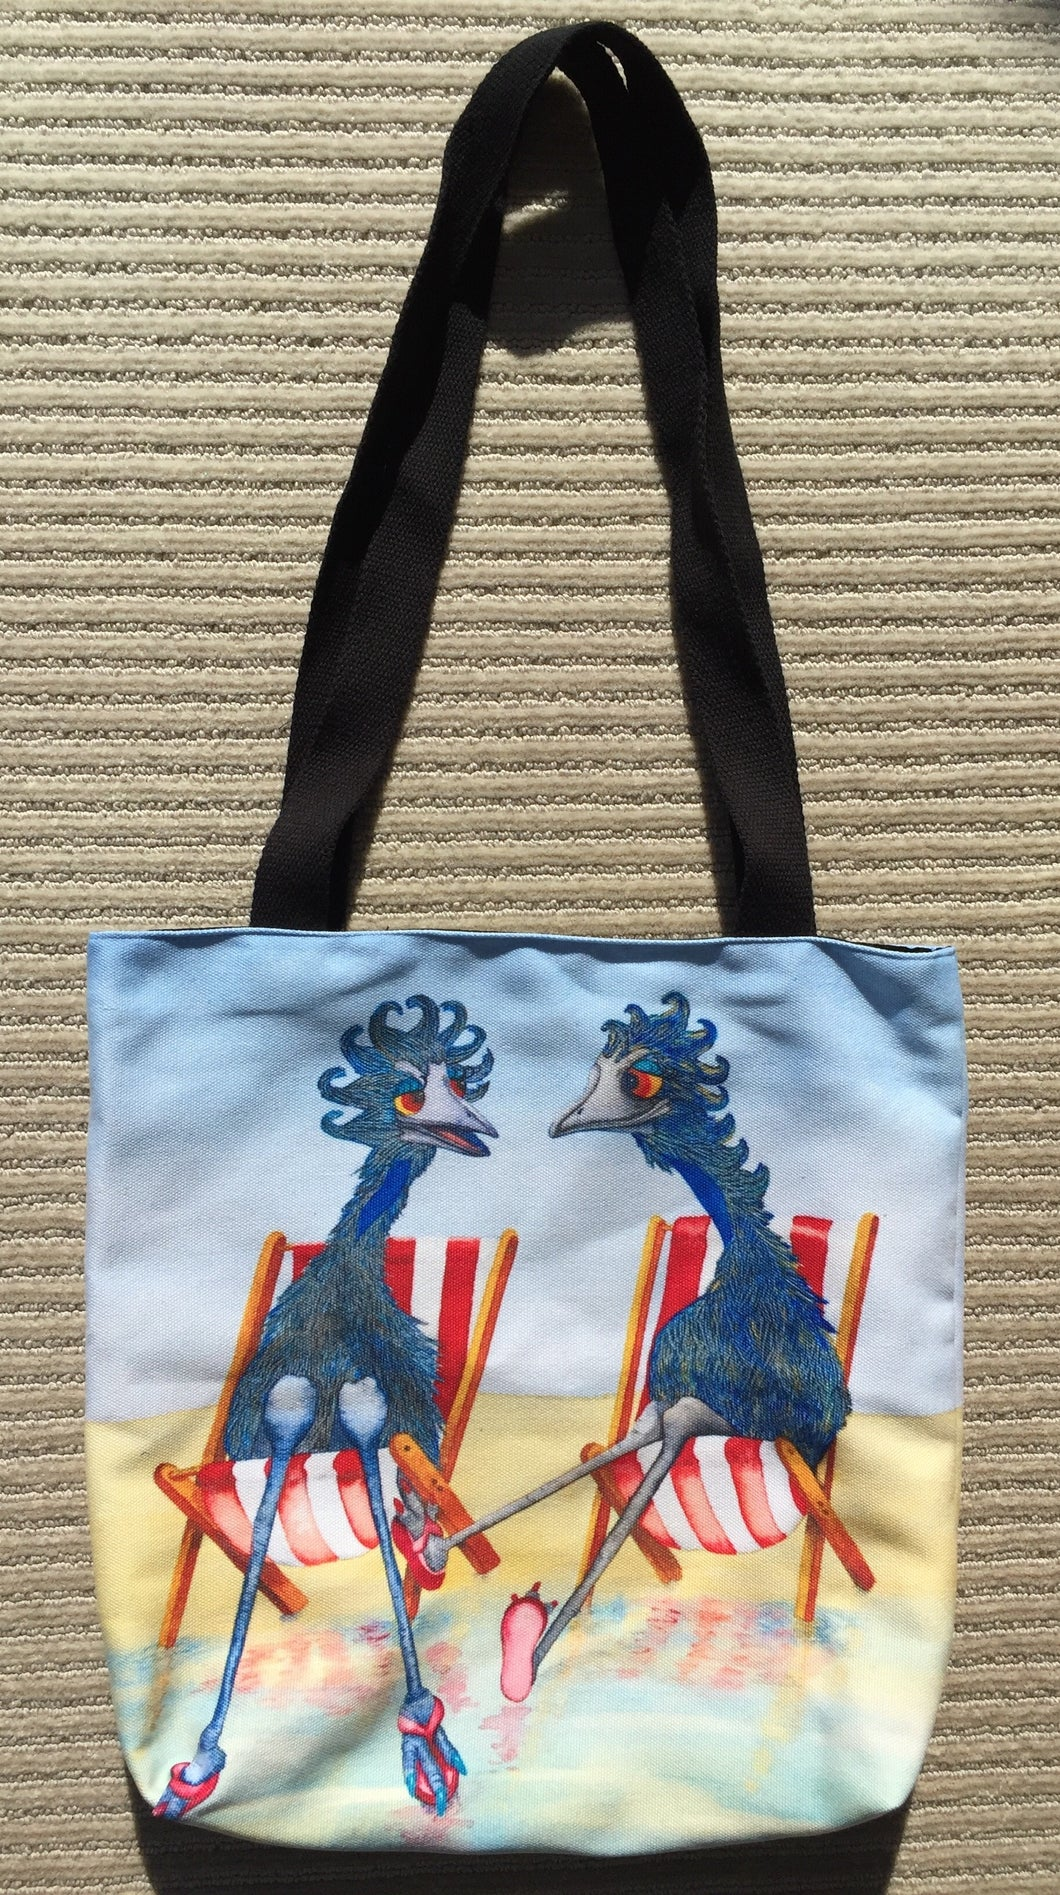 Tote Bag: Beachside Chatter